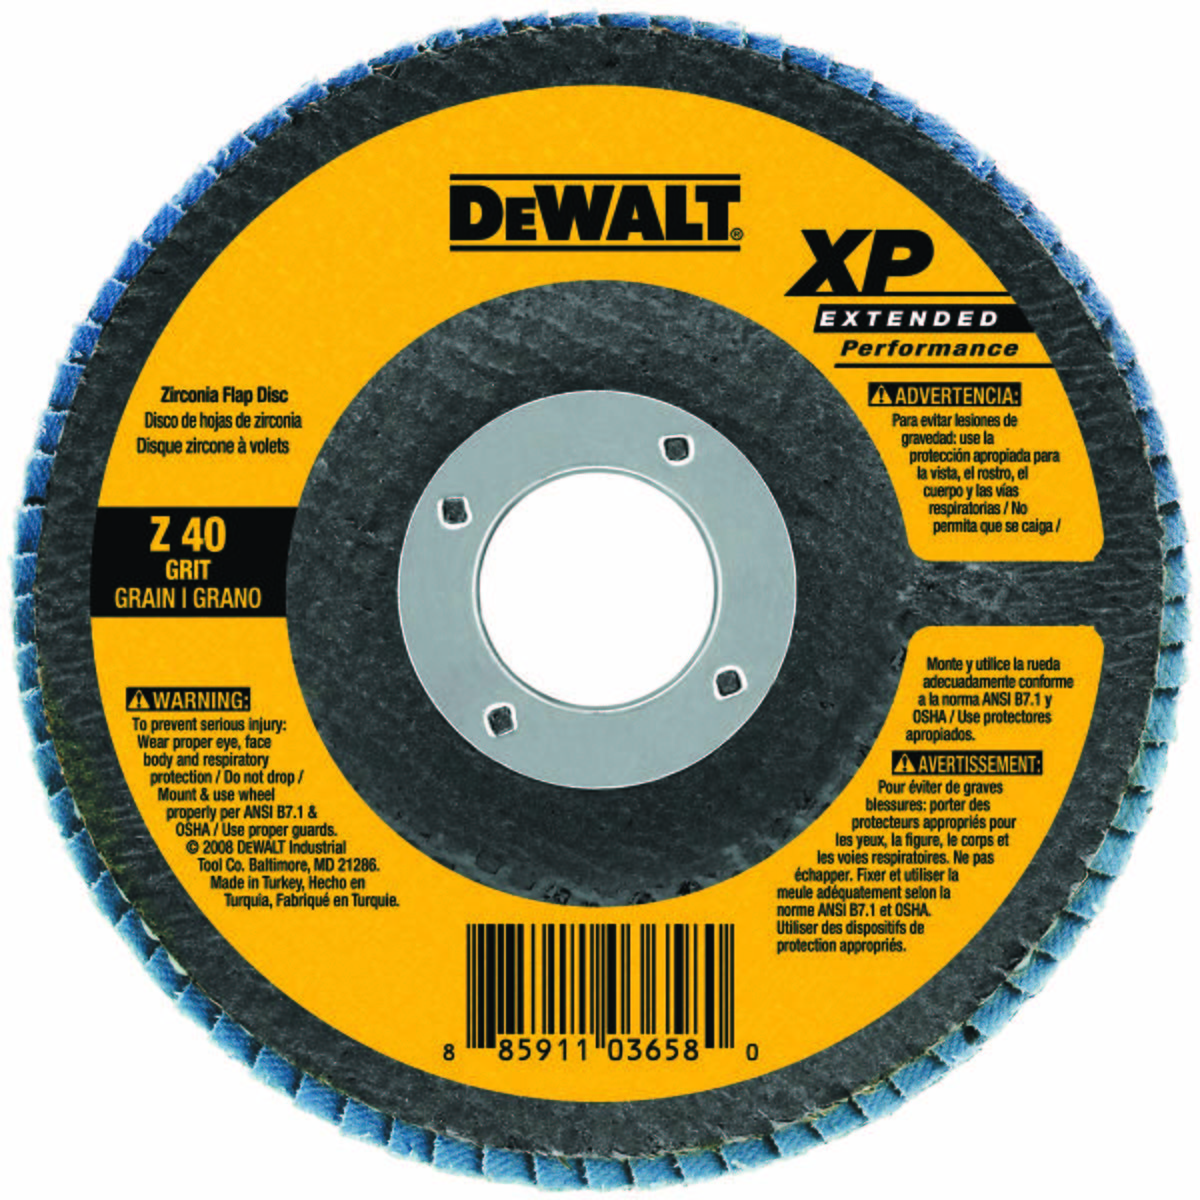 Abrasive Flap Disc, Abrasive Material Zirconia Alumina, Series XP Extended Performance, Max. RPM 13,300 FLAP DISC, DIA. 4.5 IN, AH 7/8 IN, 60 GRIT